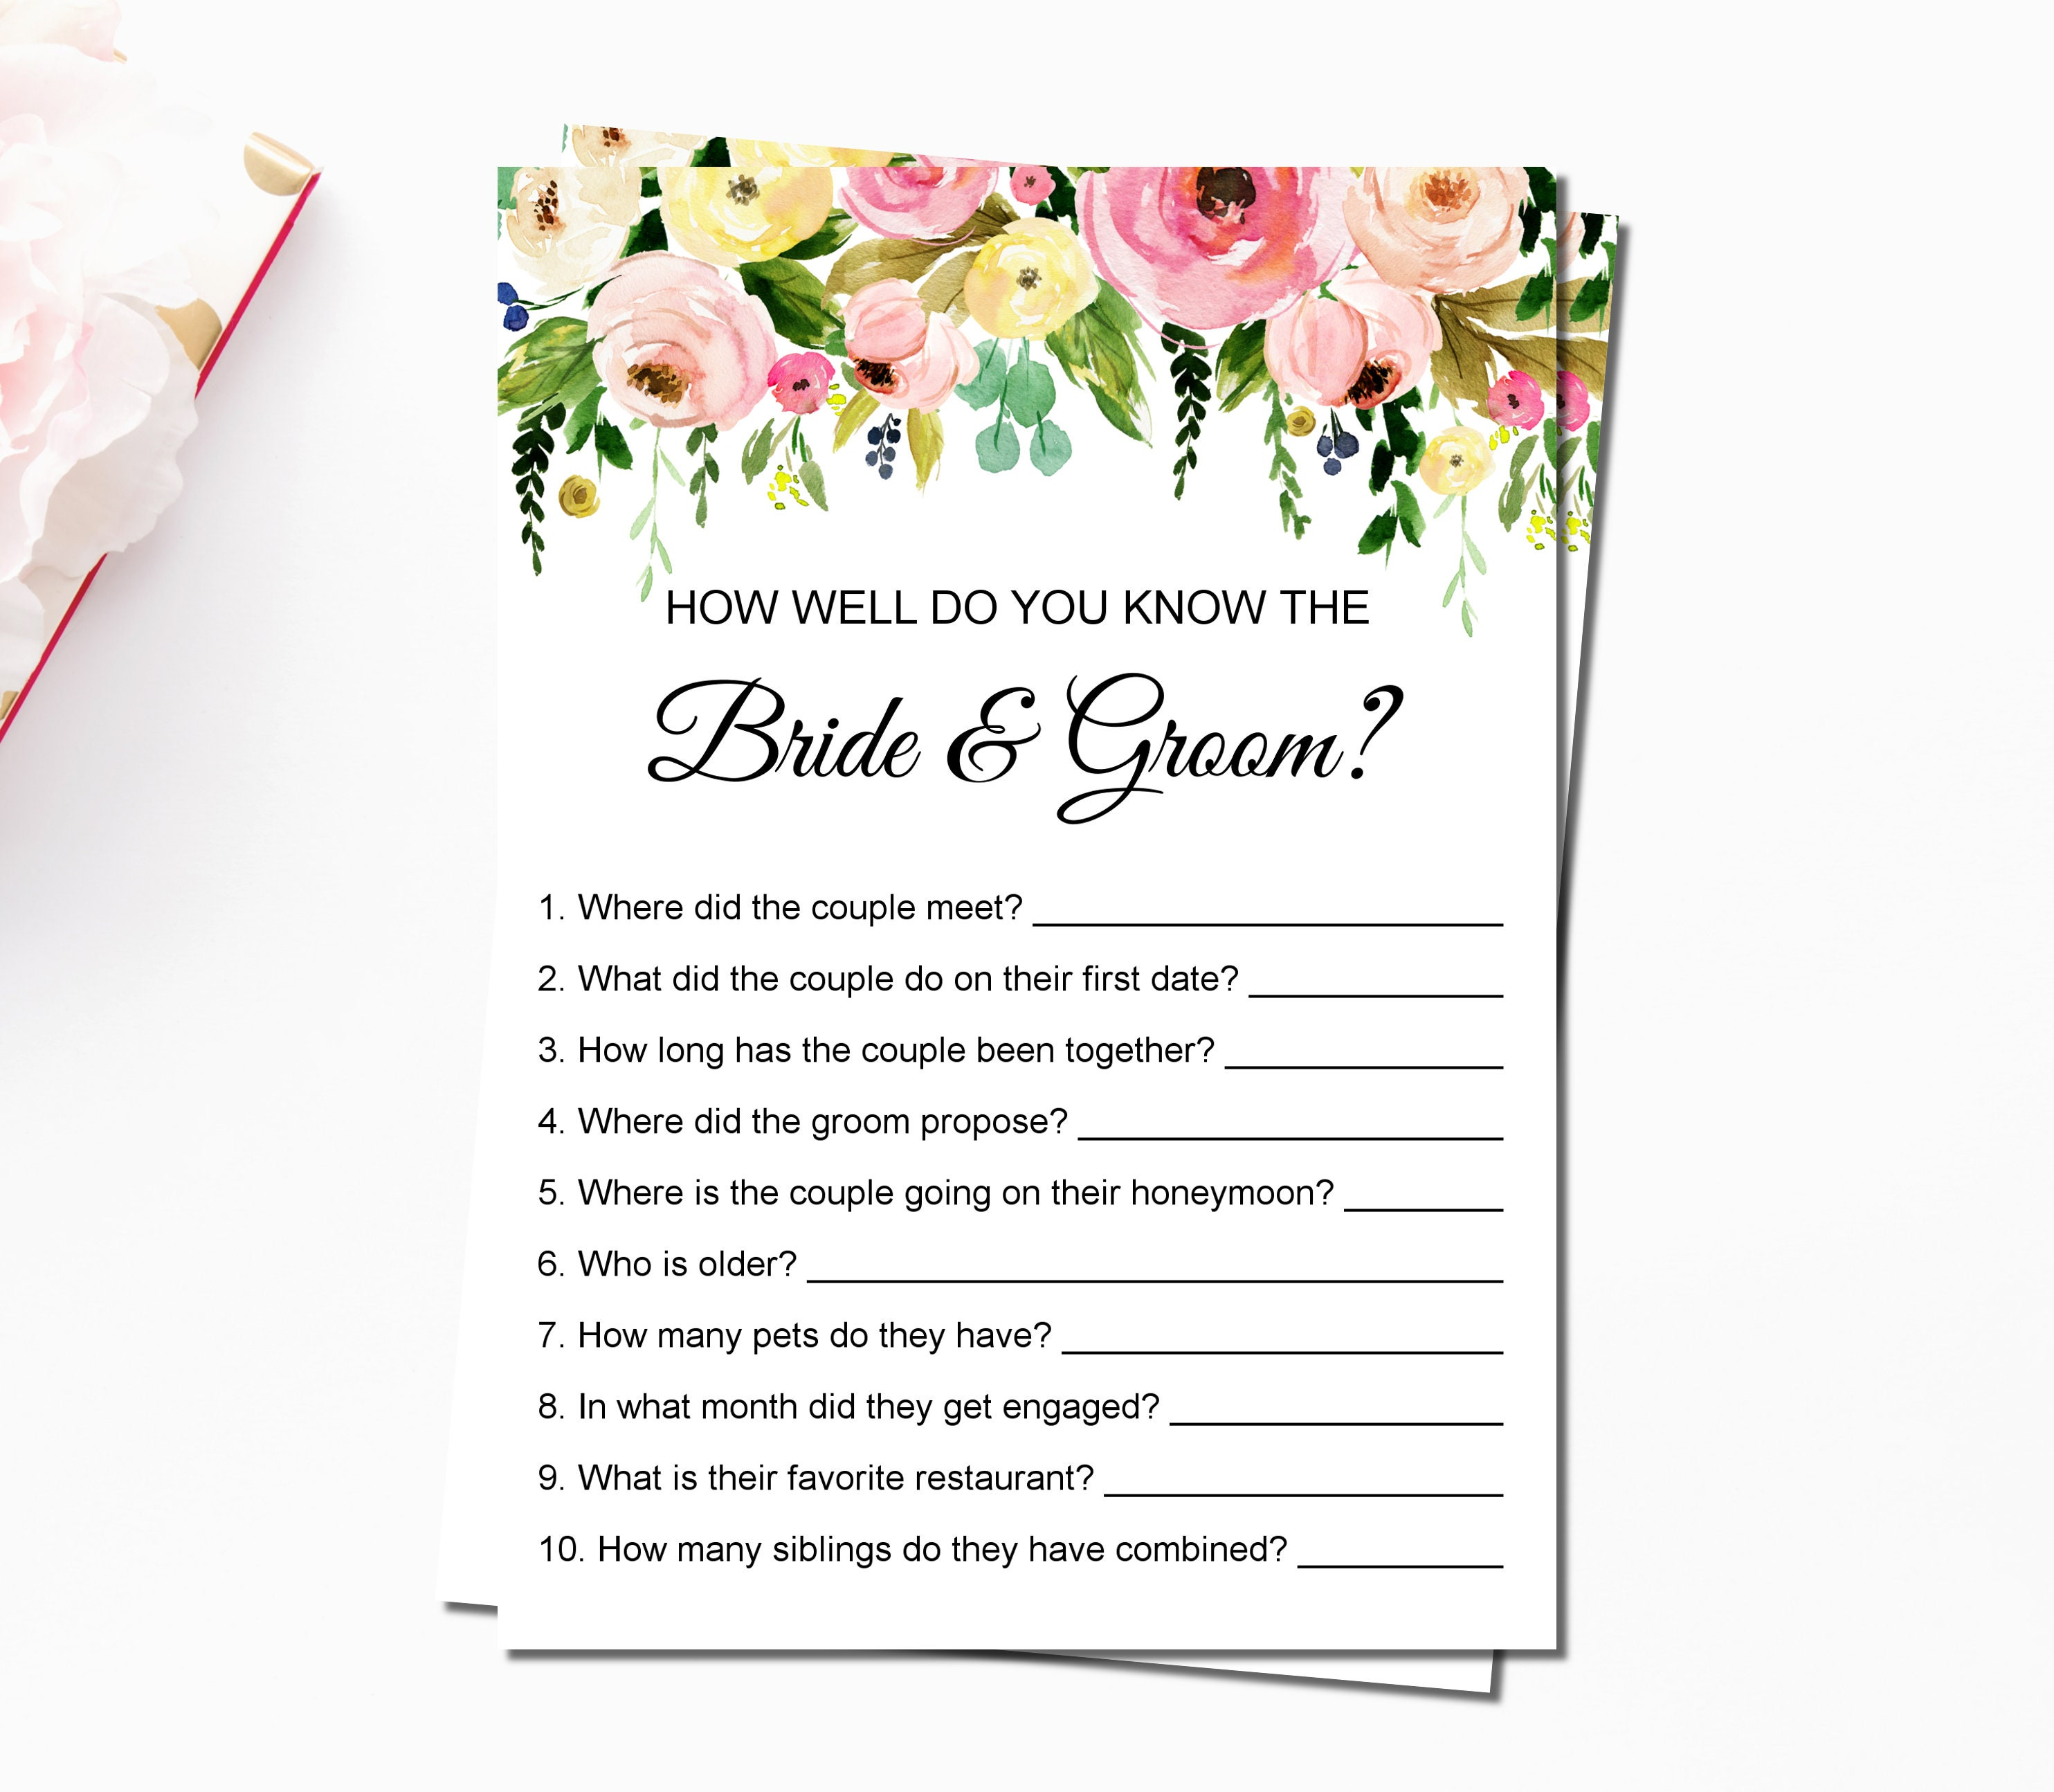 How Well Do You Know The Bride & Groom Floral Spring